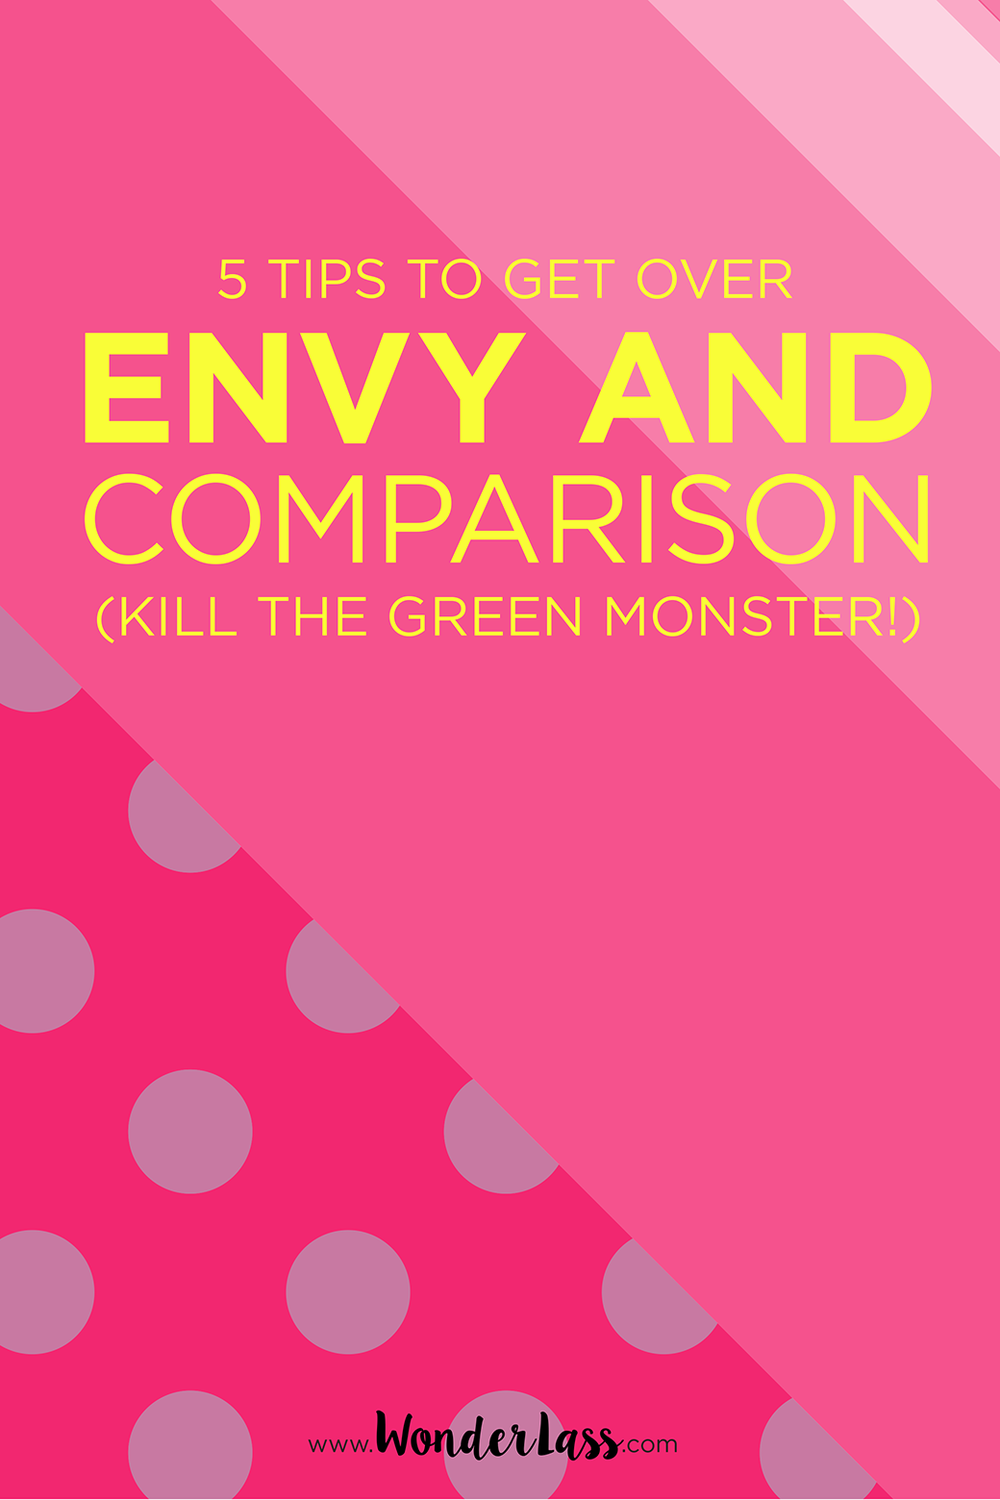 Check out these 5 tips for how to get over envy and comparison!